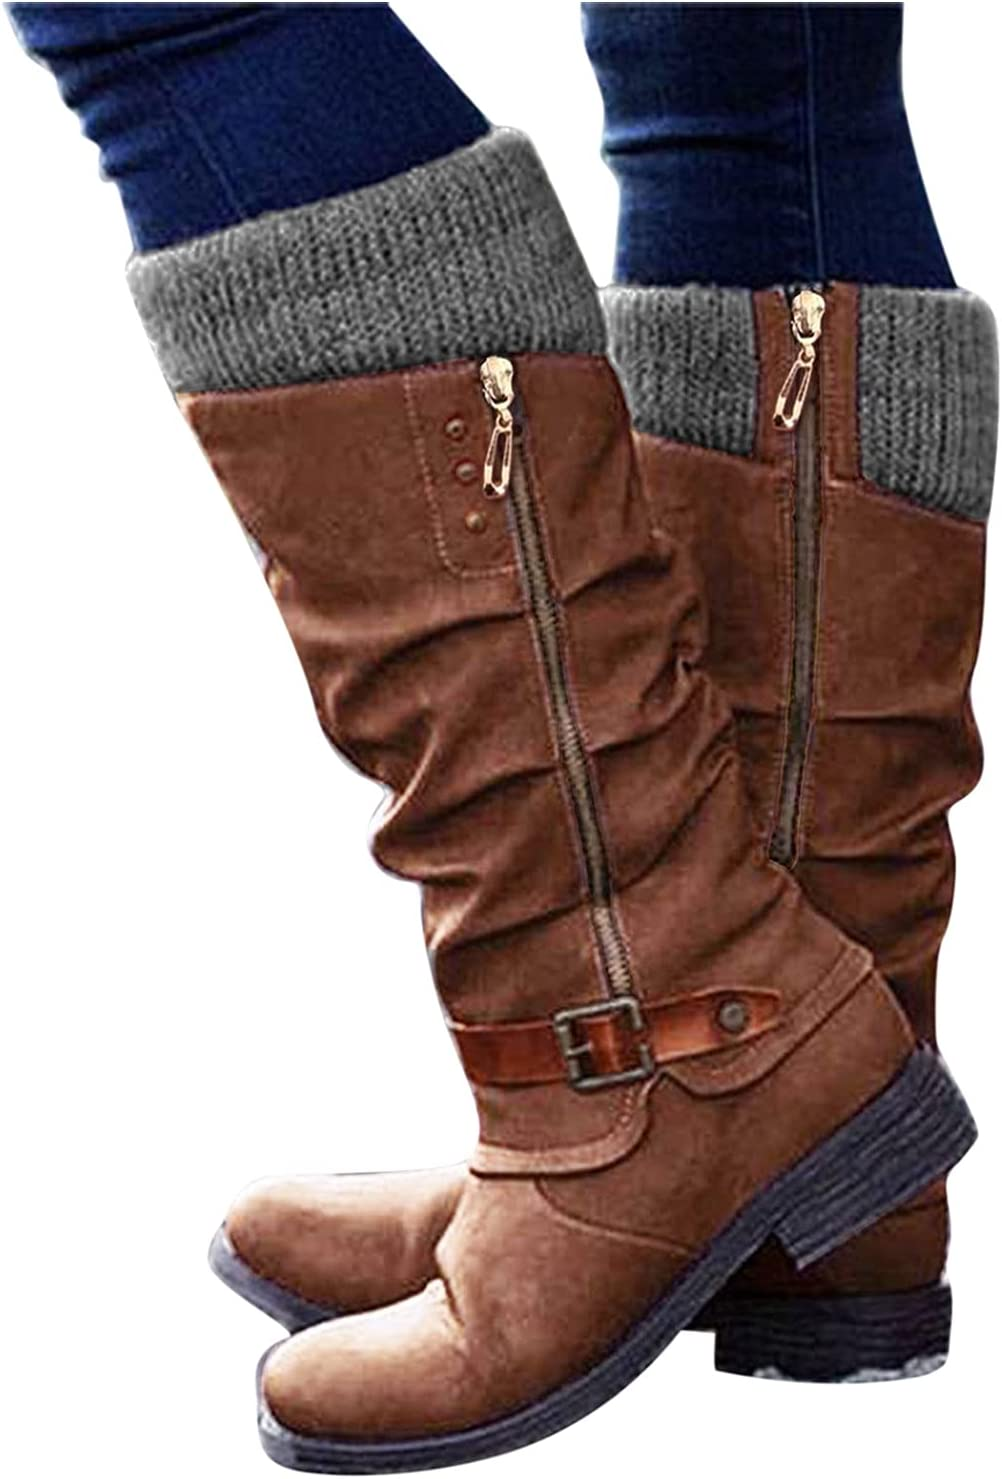 NOLDARES Womens Faux Fur Thermal Zipper Low-Heel Retro Lace-up Boots Outdoor Walking Snow Winter Mid-Calf Boots